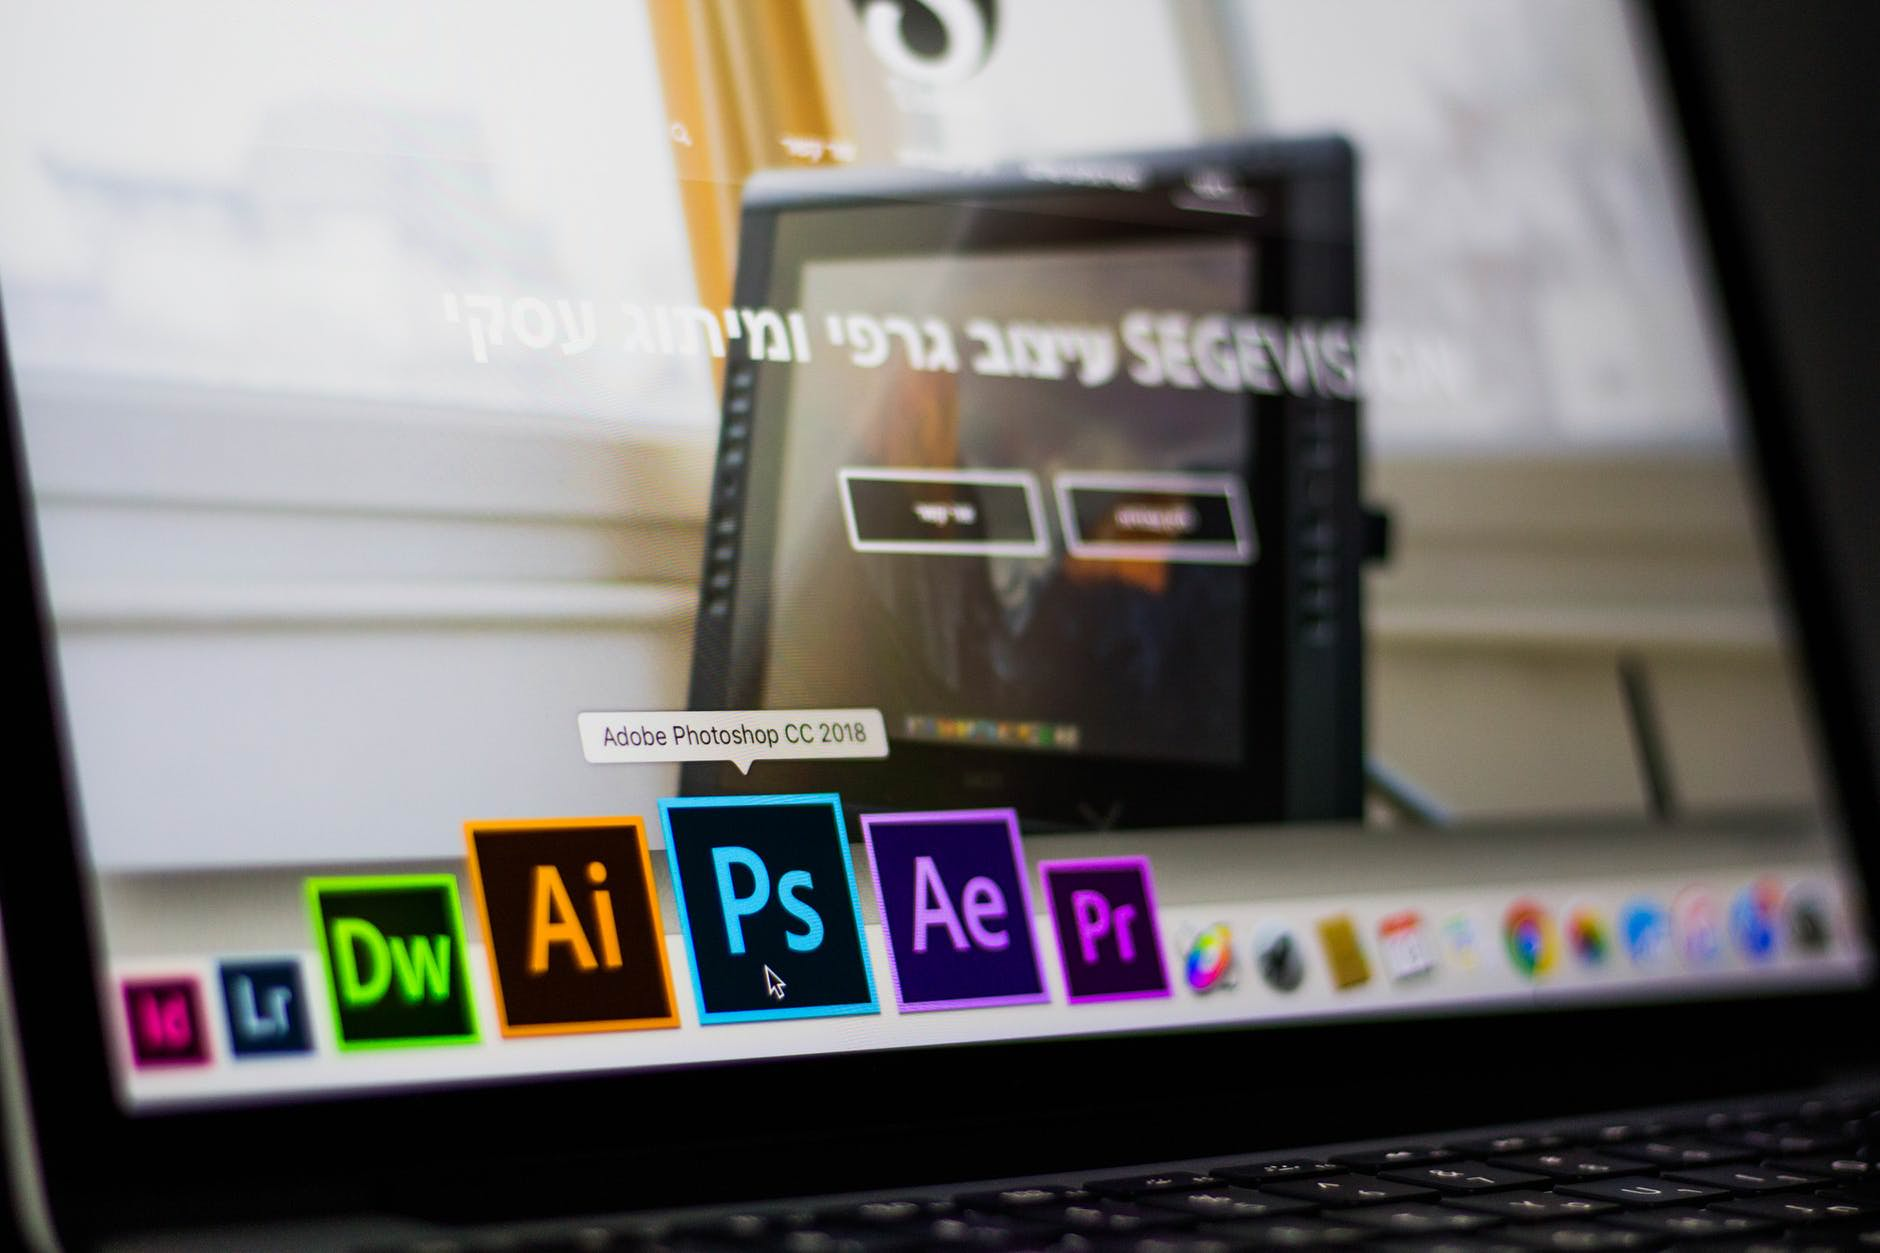 Normally $1210, this 8-course Photoshop bundle is 97 percent off